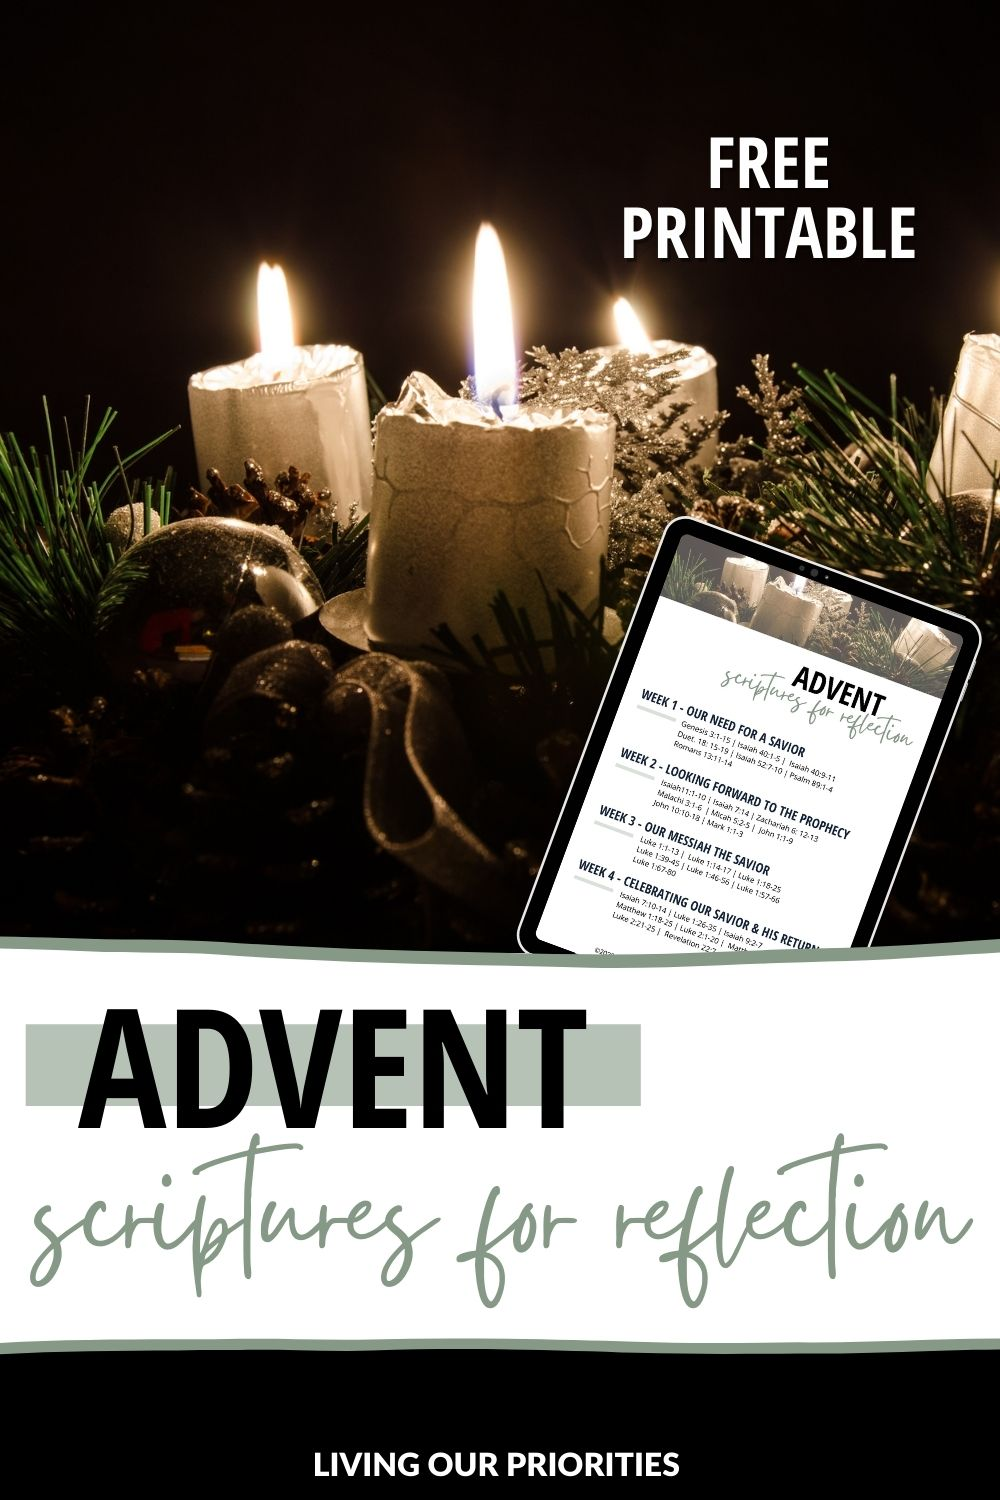 We can choose to keep Christ the center of Christmas through advent scriptures for reflection. #advent #livingourpriorities